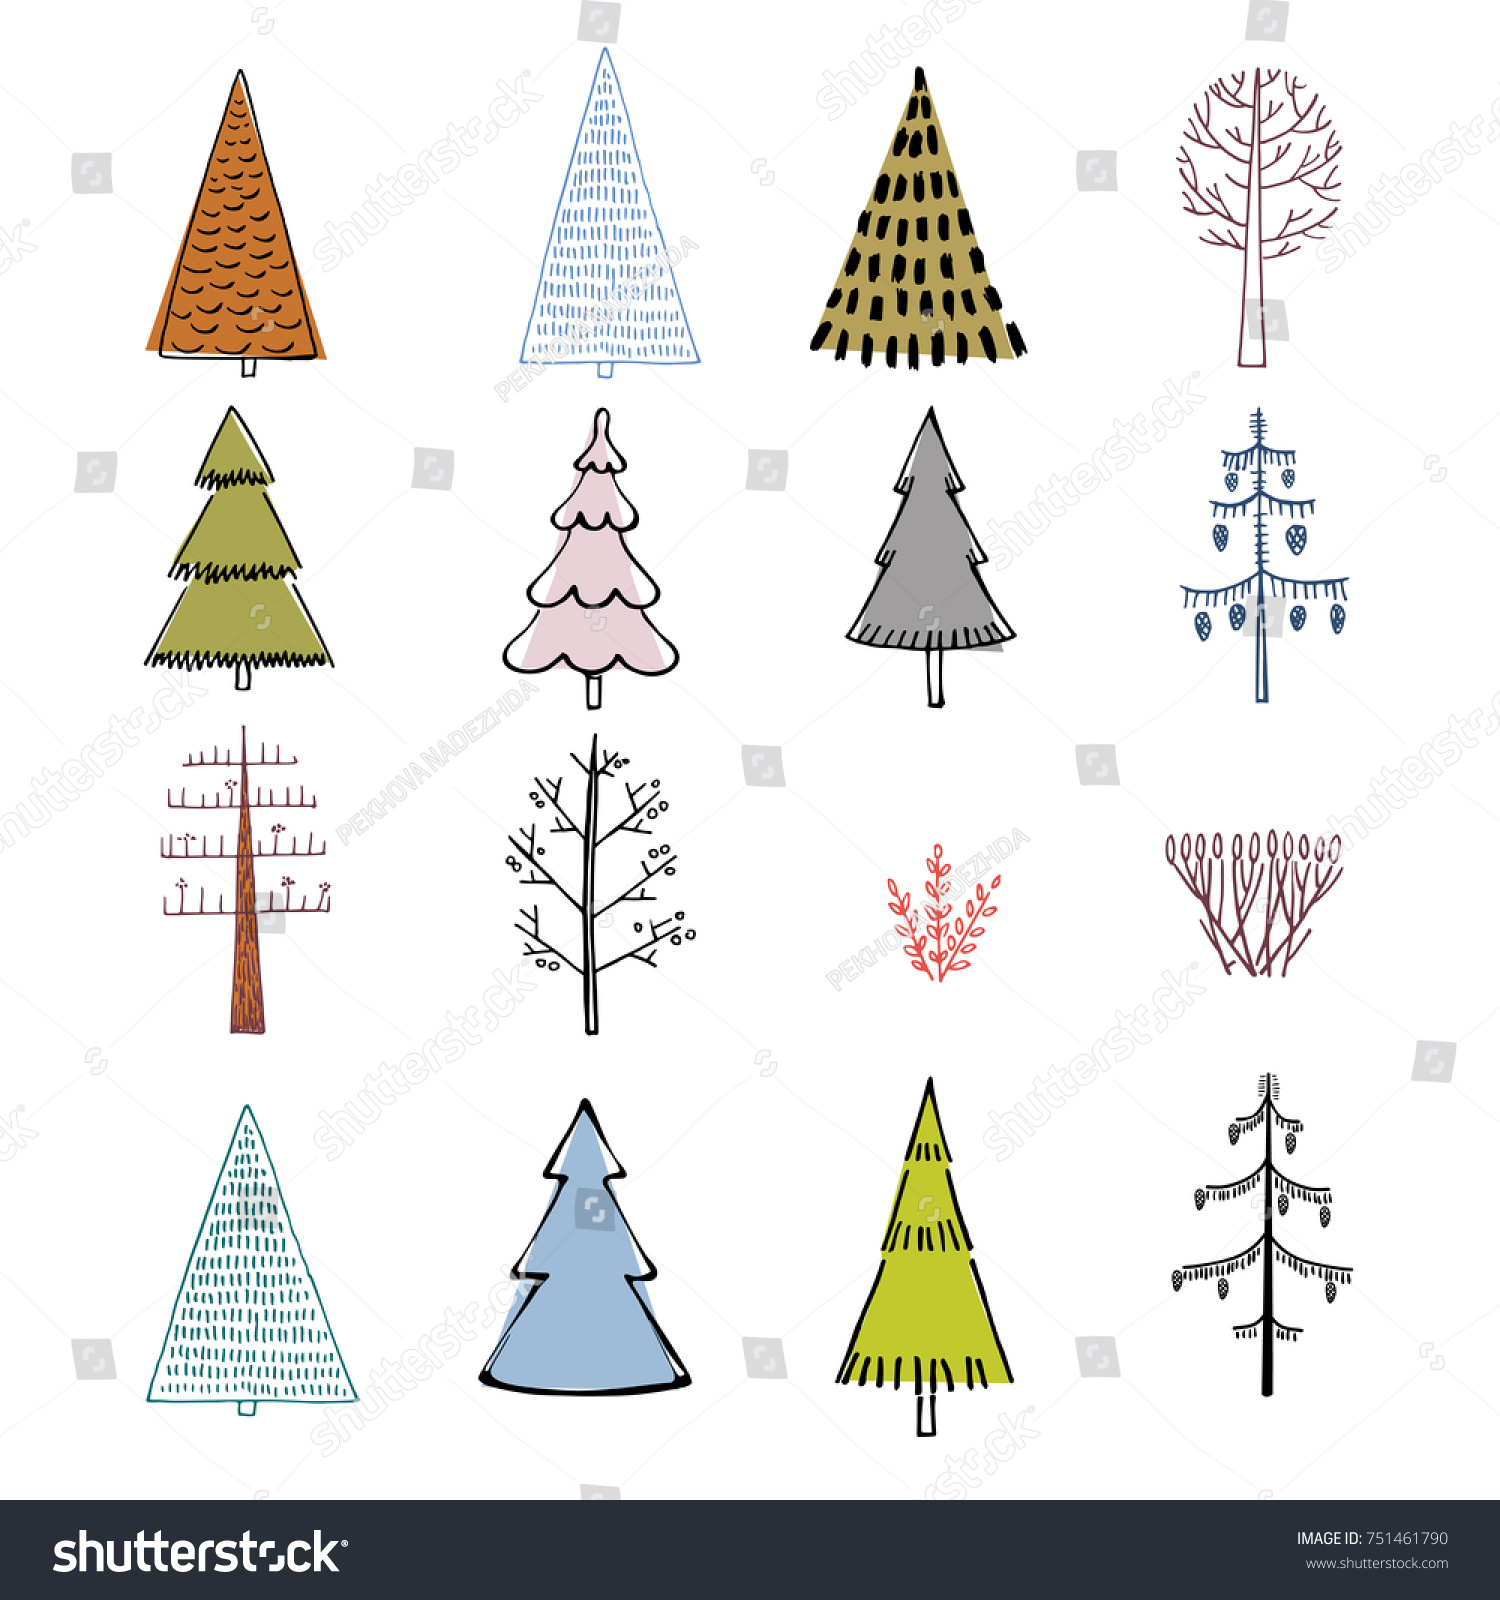 Set Hand Illustrated Christmas Trees Doodle Stock Vector (Royalty ...